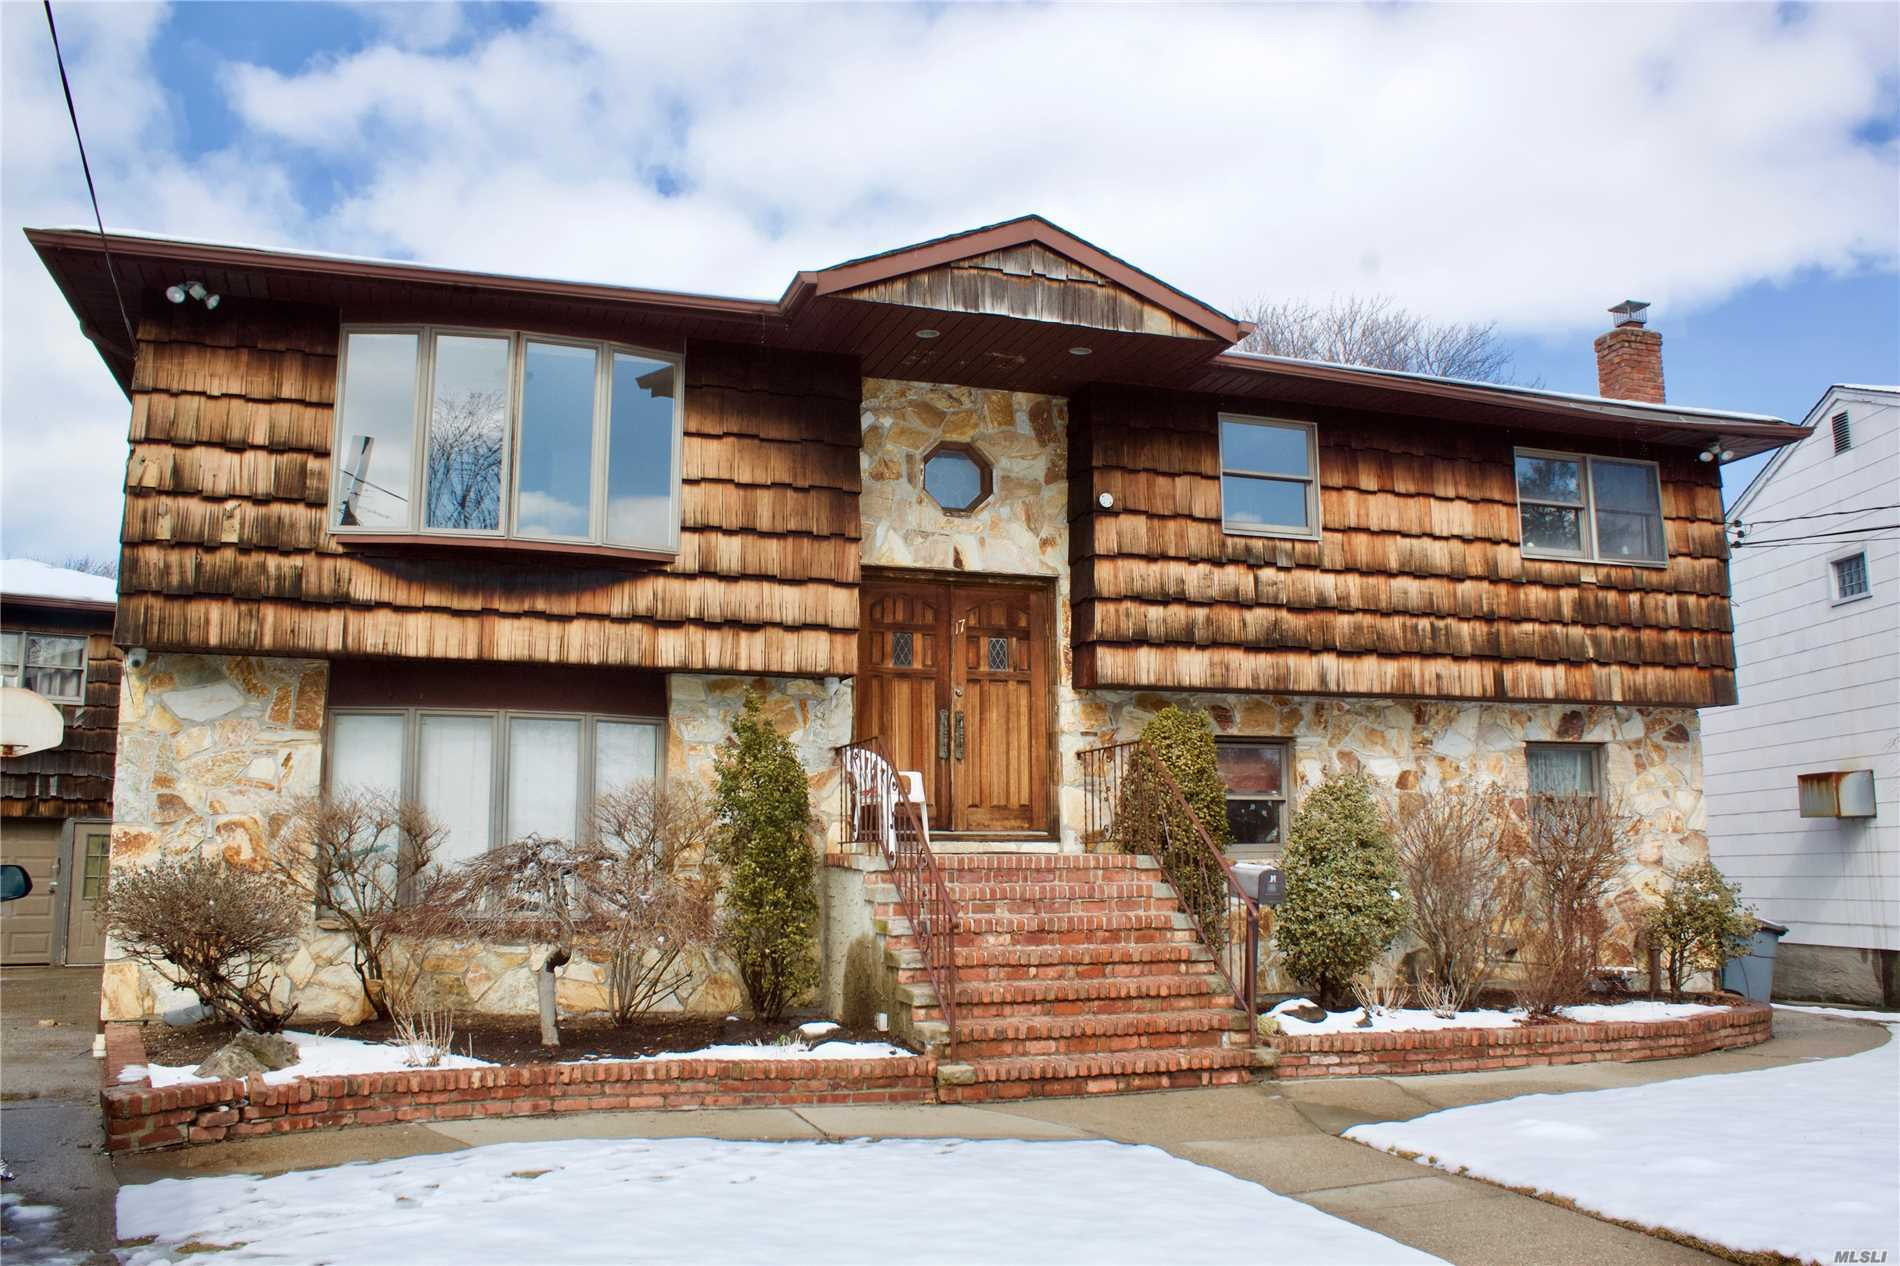 Wonderful Wideline Hi-Ranch, 5 Br, 3 Full Bath With Detached Garage, Attic For Storage, Granite Eat-In Kitchen And Formal Dining Room. Great Yard For Entertaining, In-Ground Pool, Bar, Stone Bbq Area, A Must See!!! Needs Tlc.